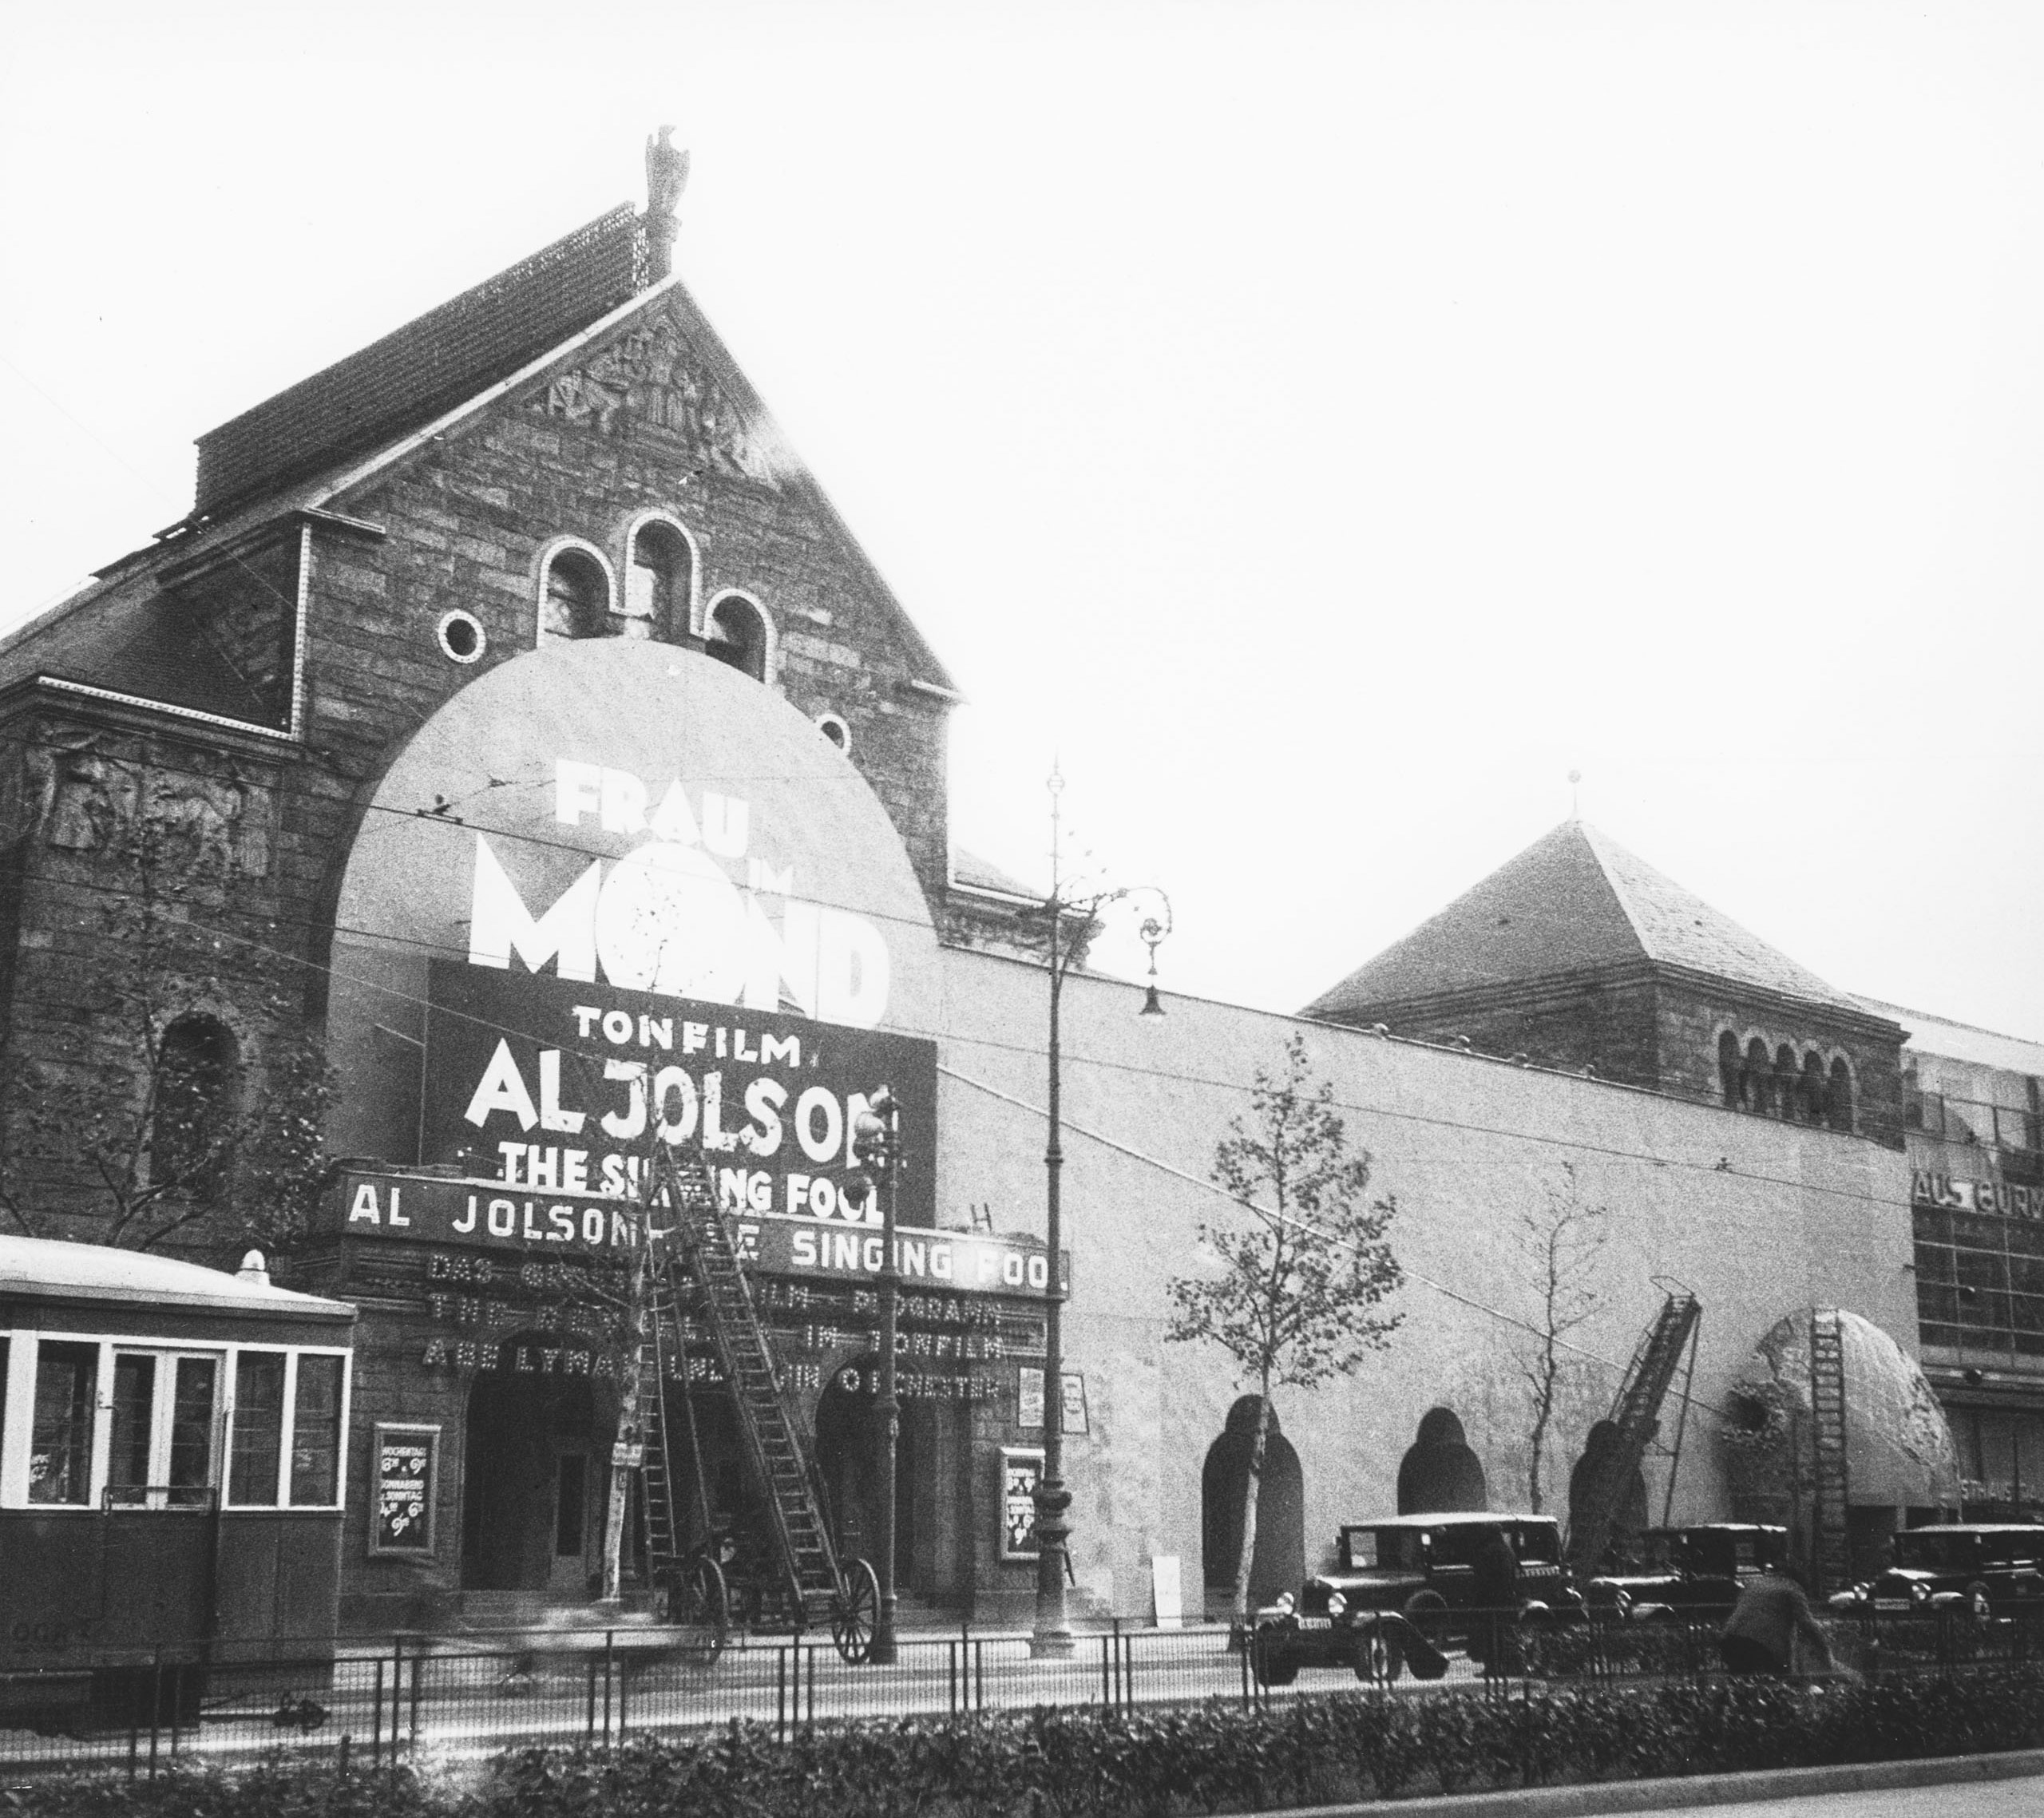 Black and white photo of the façade with advertisments in the shape of the moon